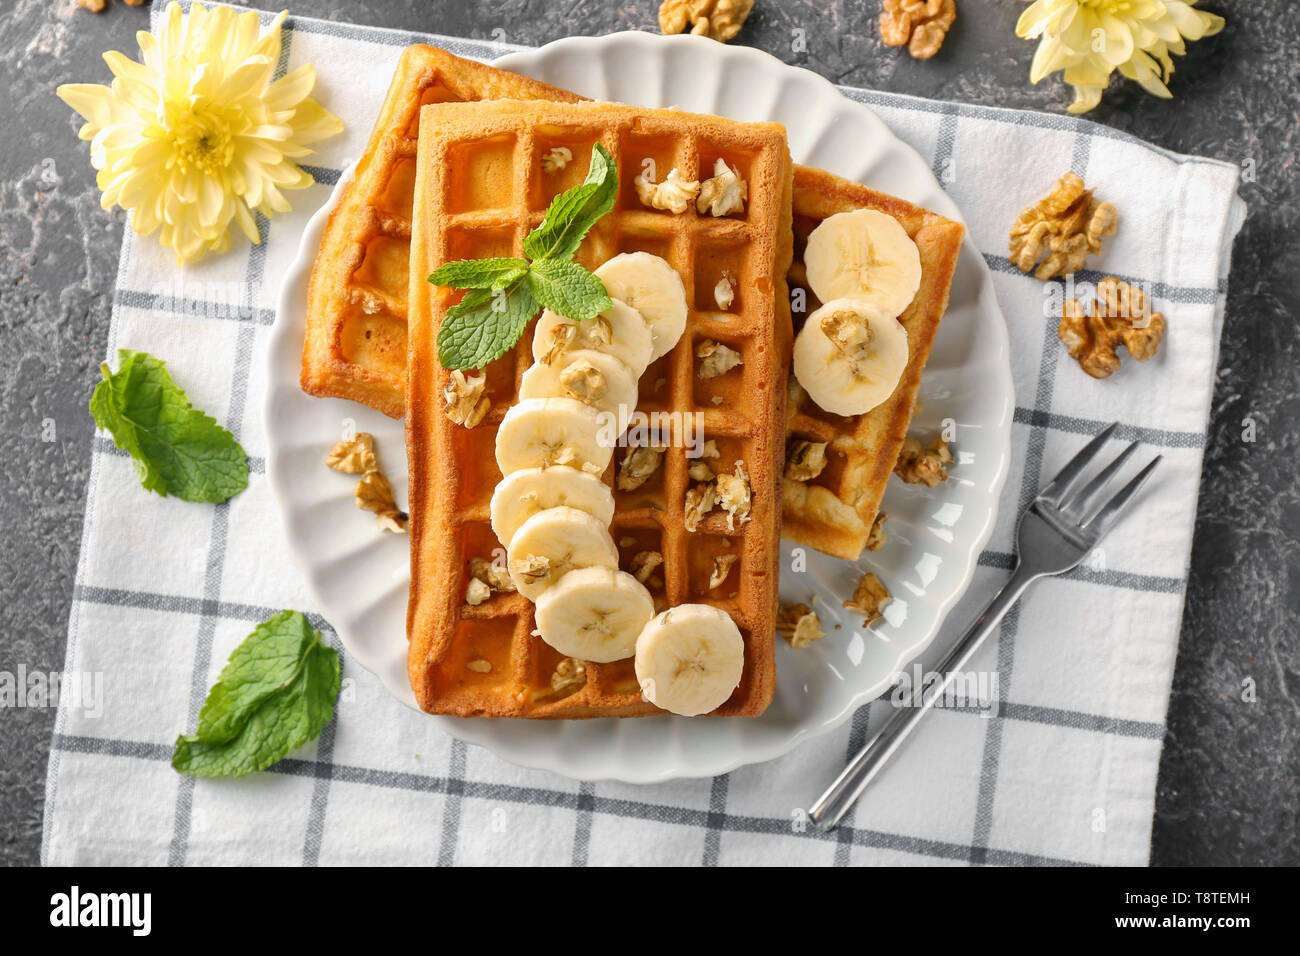 Delicious waffles with banana slices and nuts on plate - Stock Image